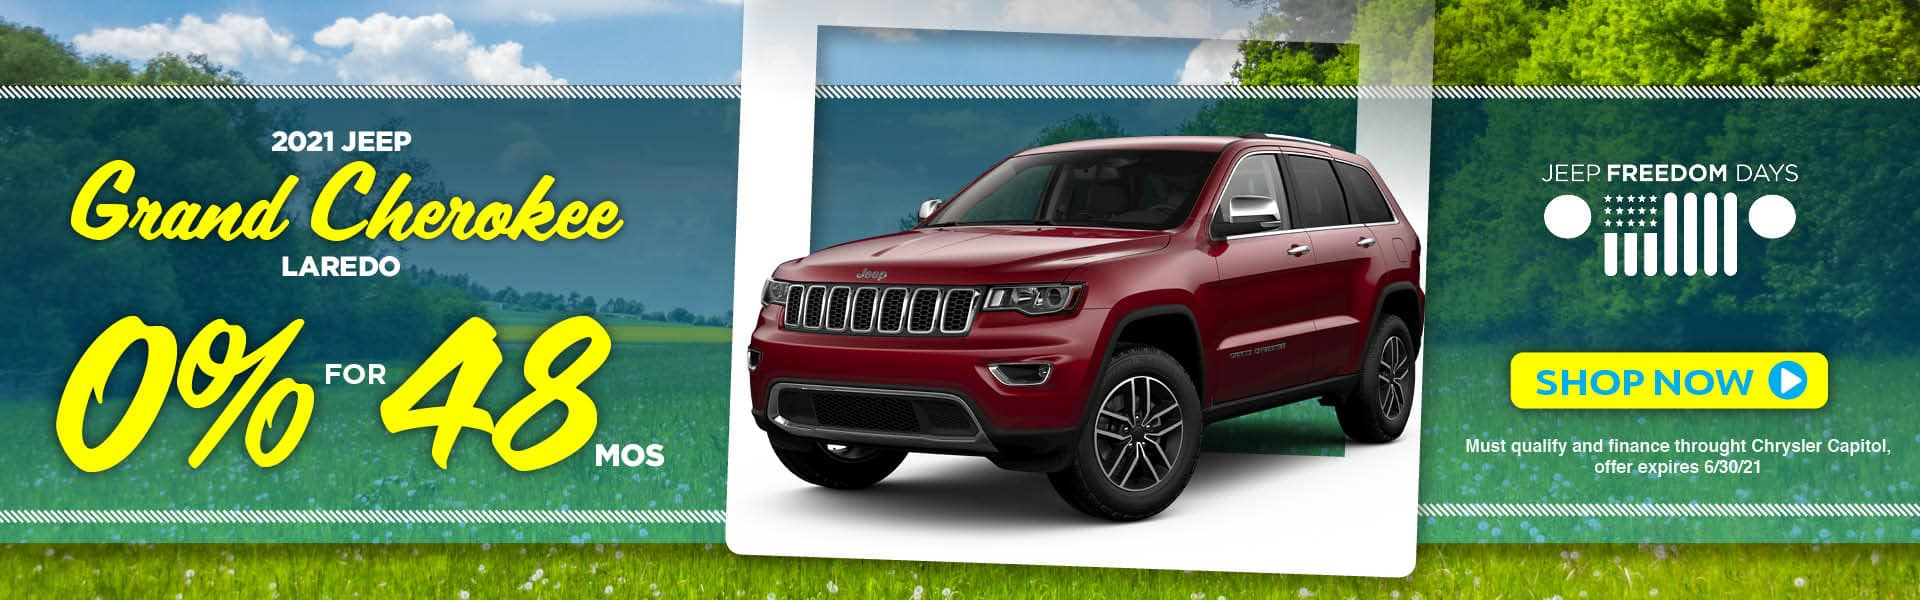 2021 Jeep Grand Cherokee Laredo 0% for 48 Months